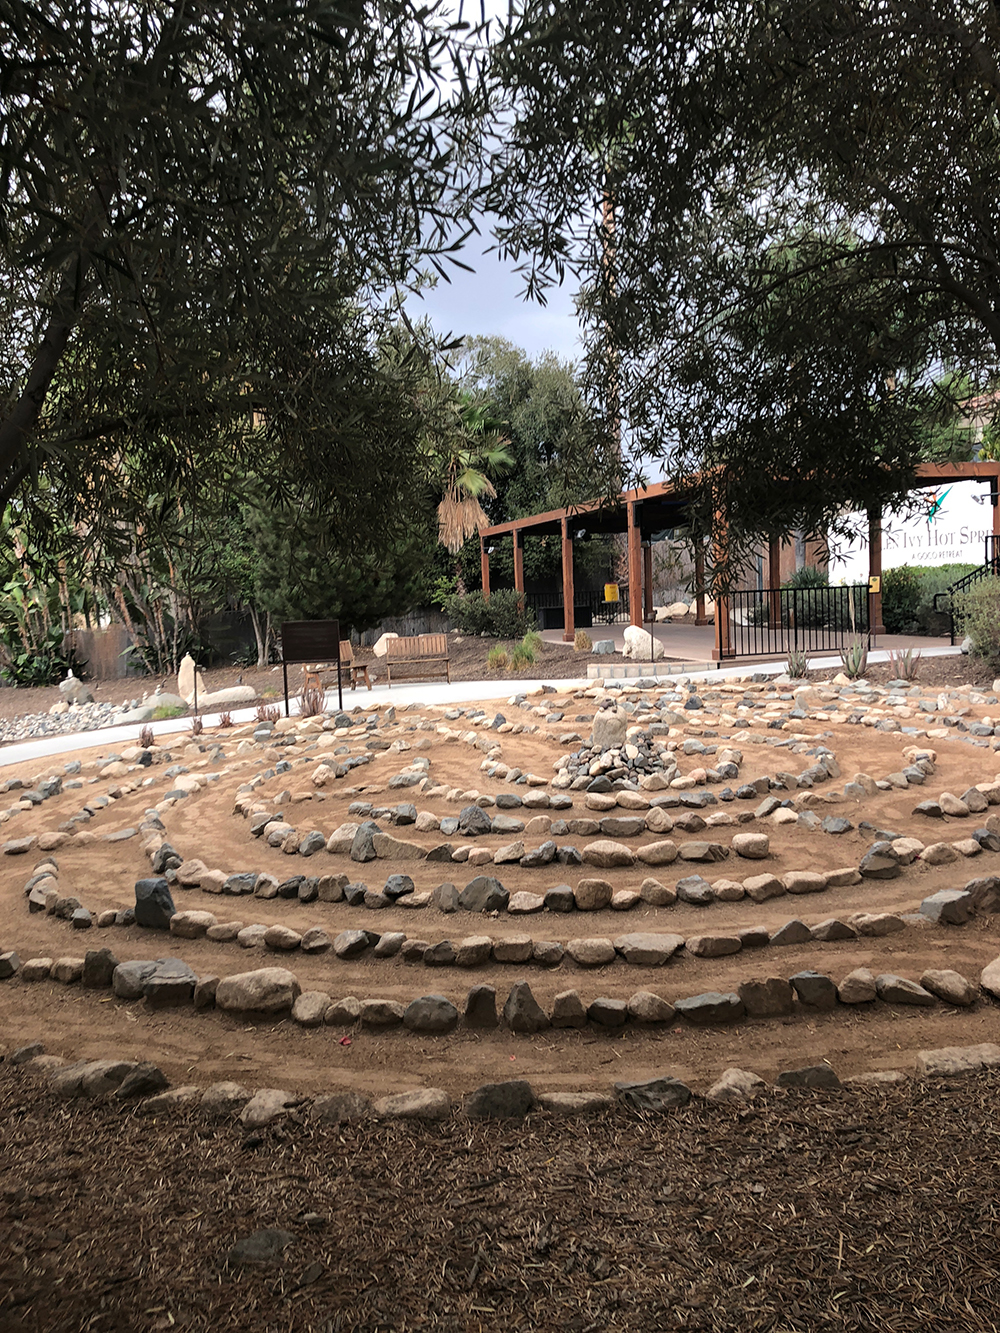 Featuring only one path to the center, Glen Ivy's Labyrinth offers the chance to clear your mind and practice reflection while walking through.